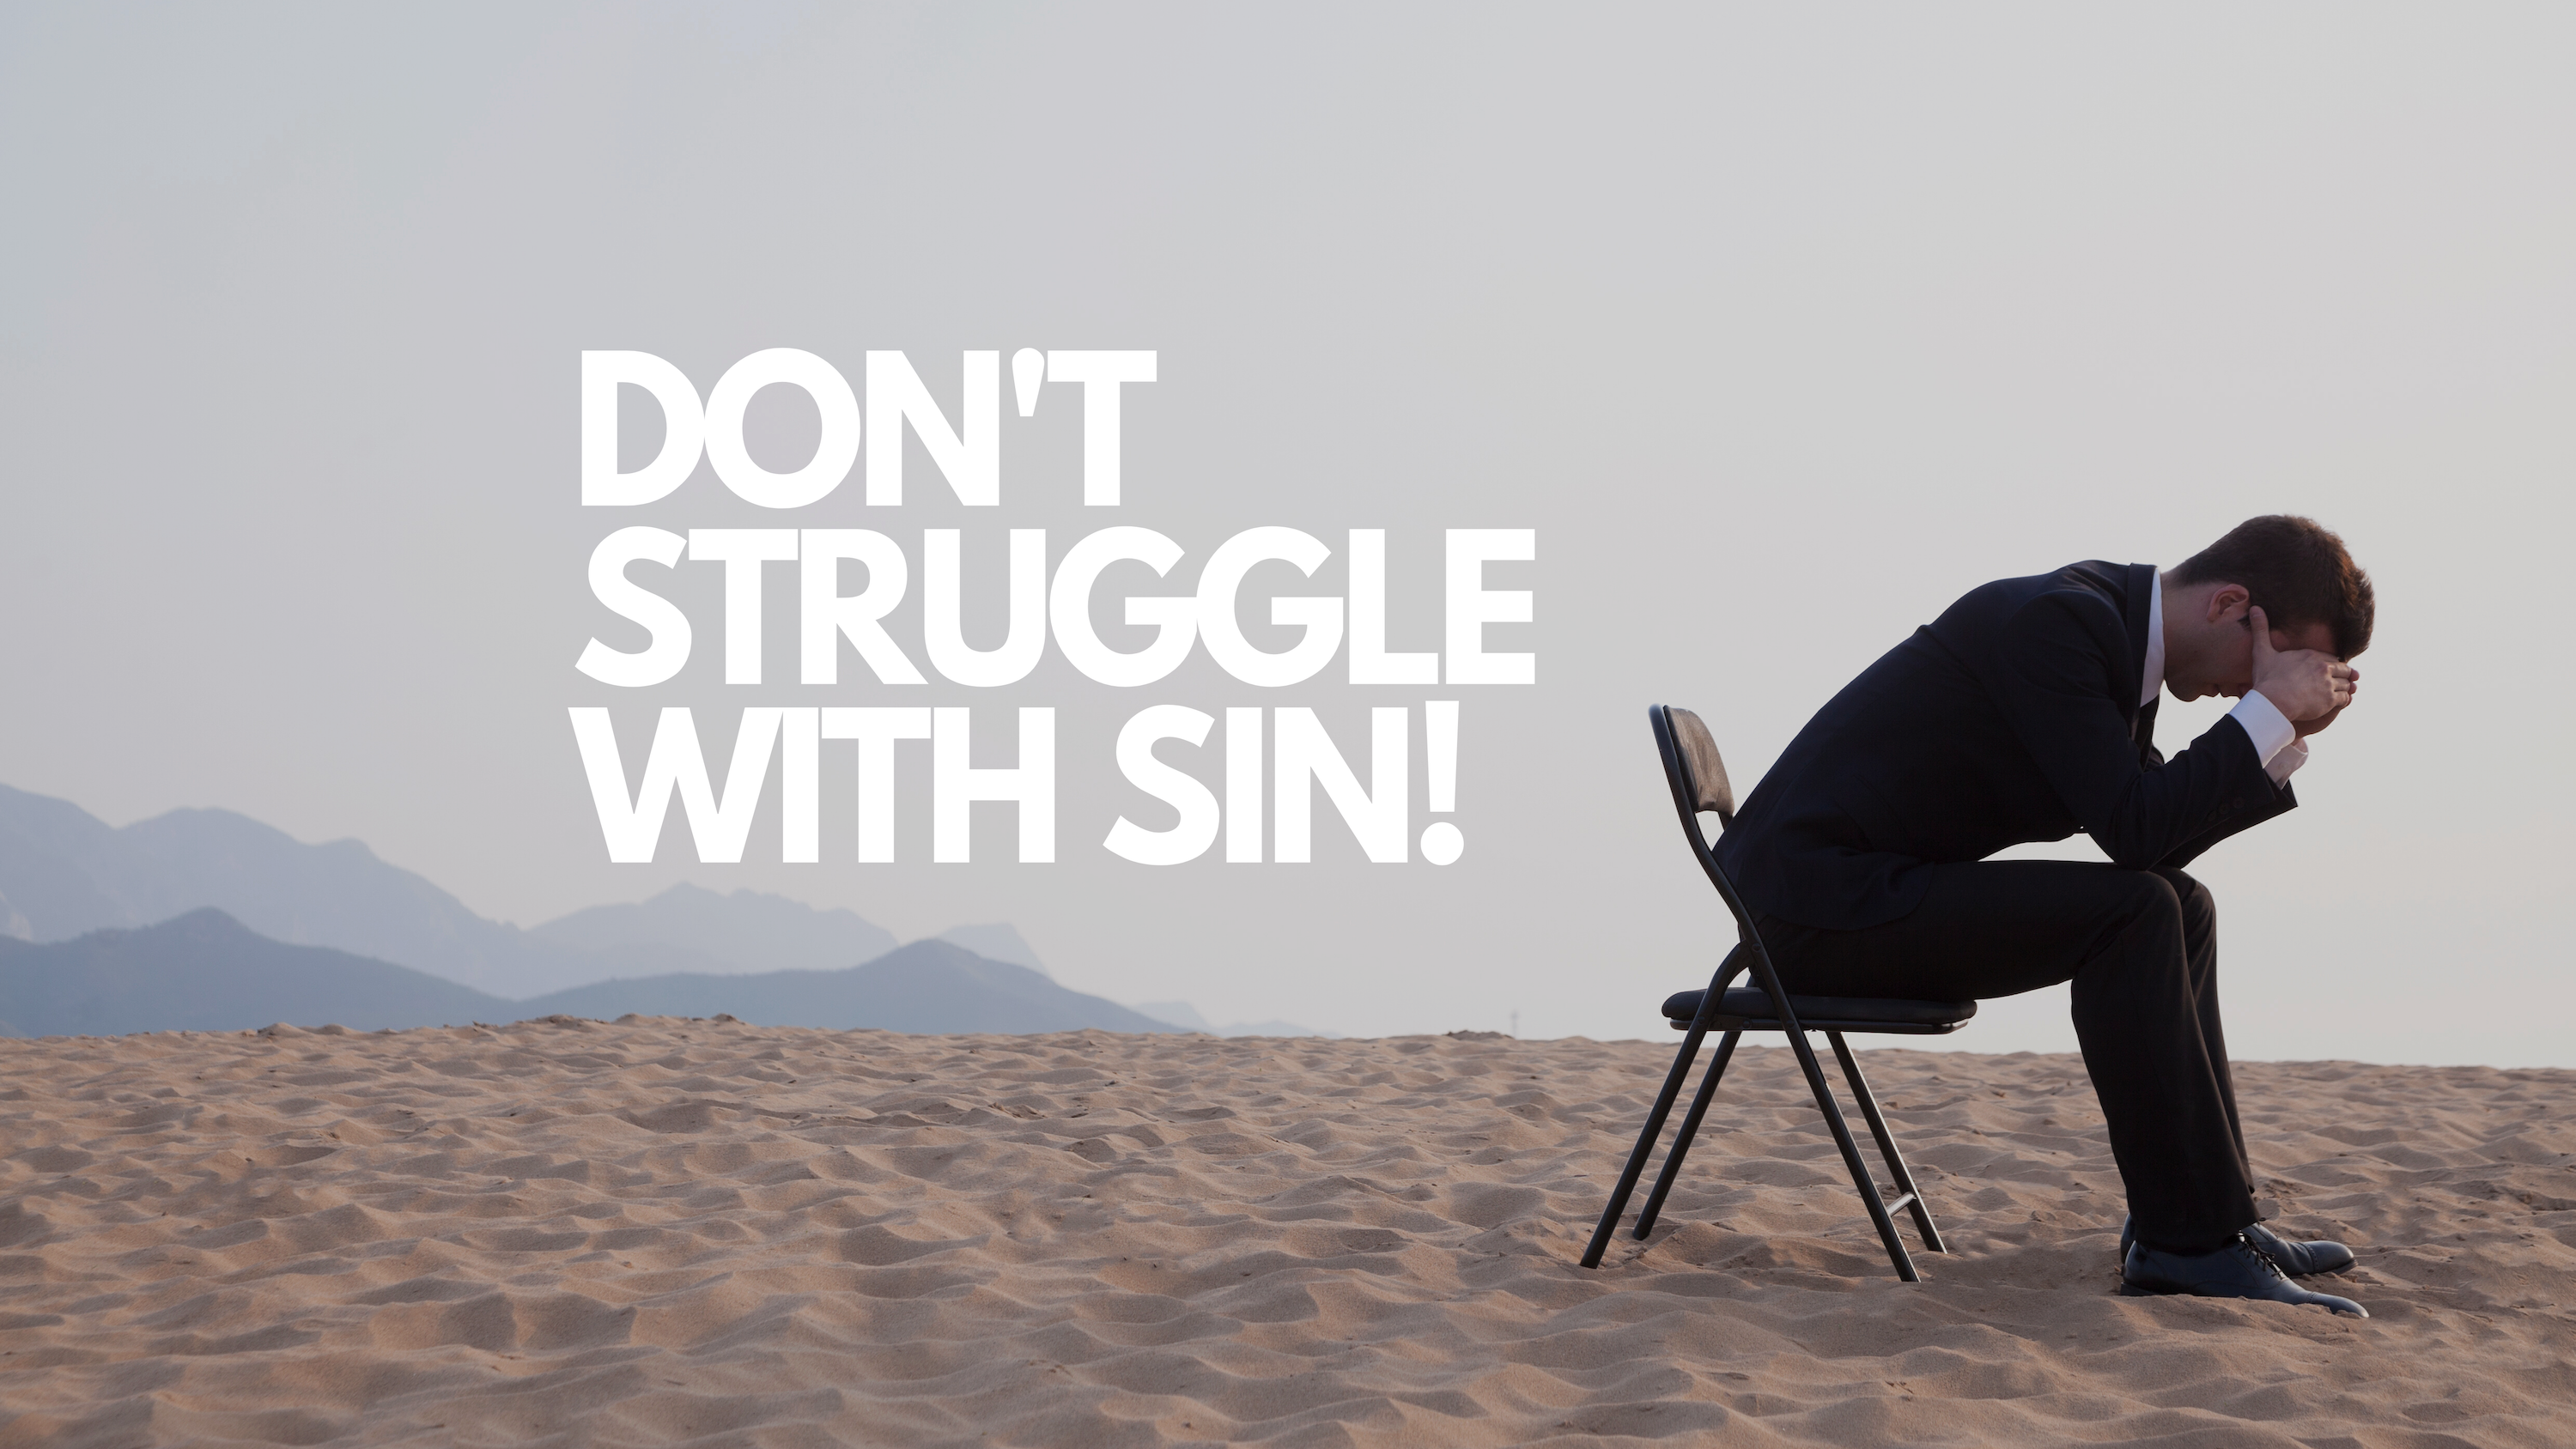 Don't Struggle With Sin!